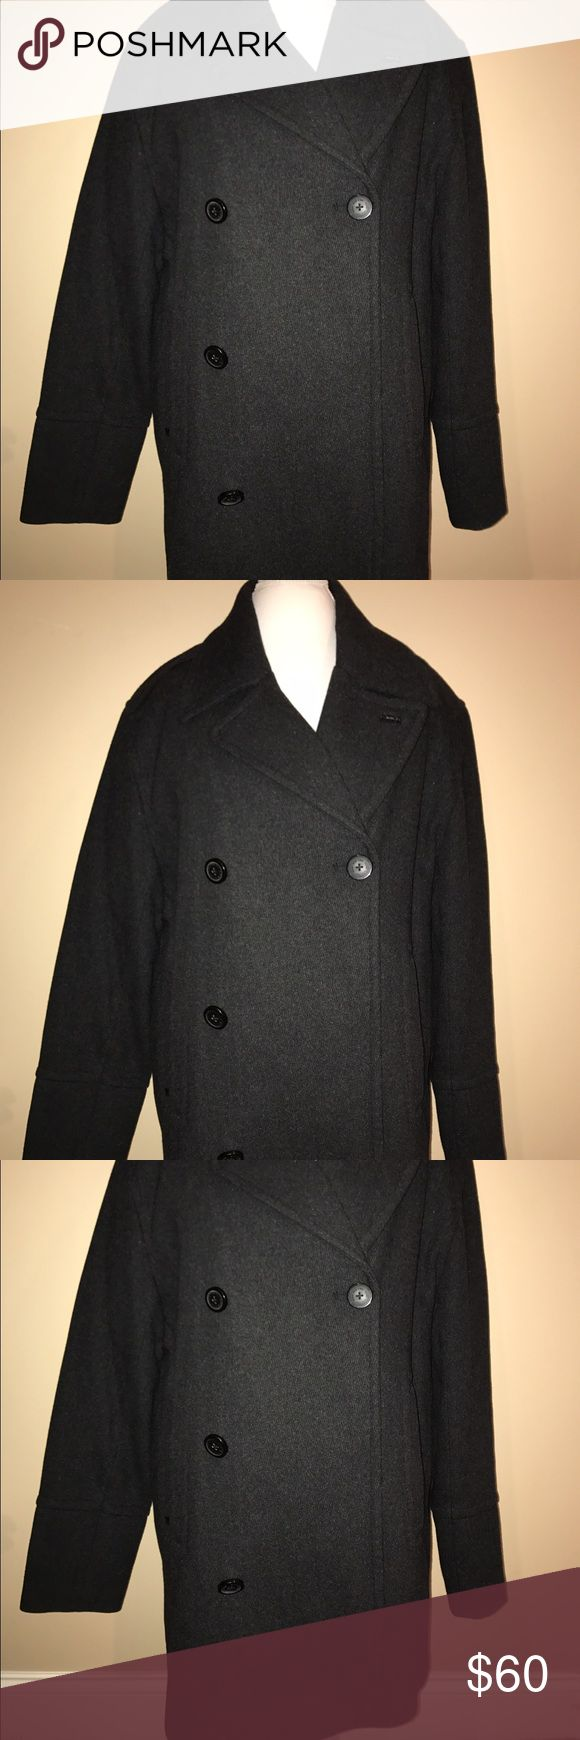 "Gray Men's Marc Jacobs Pea Coat XL WORN ONCE This gorgeous, think, amazing men's pea coat is far beyond ""on sale"". It was worn once and dry cleaned for sale. The front has luxurious buttons and military style shoulders complete this statement piece. Marc Jacobs Jackets & Coats Pea Coats"